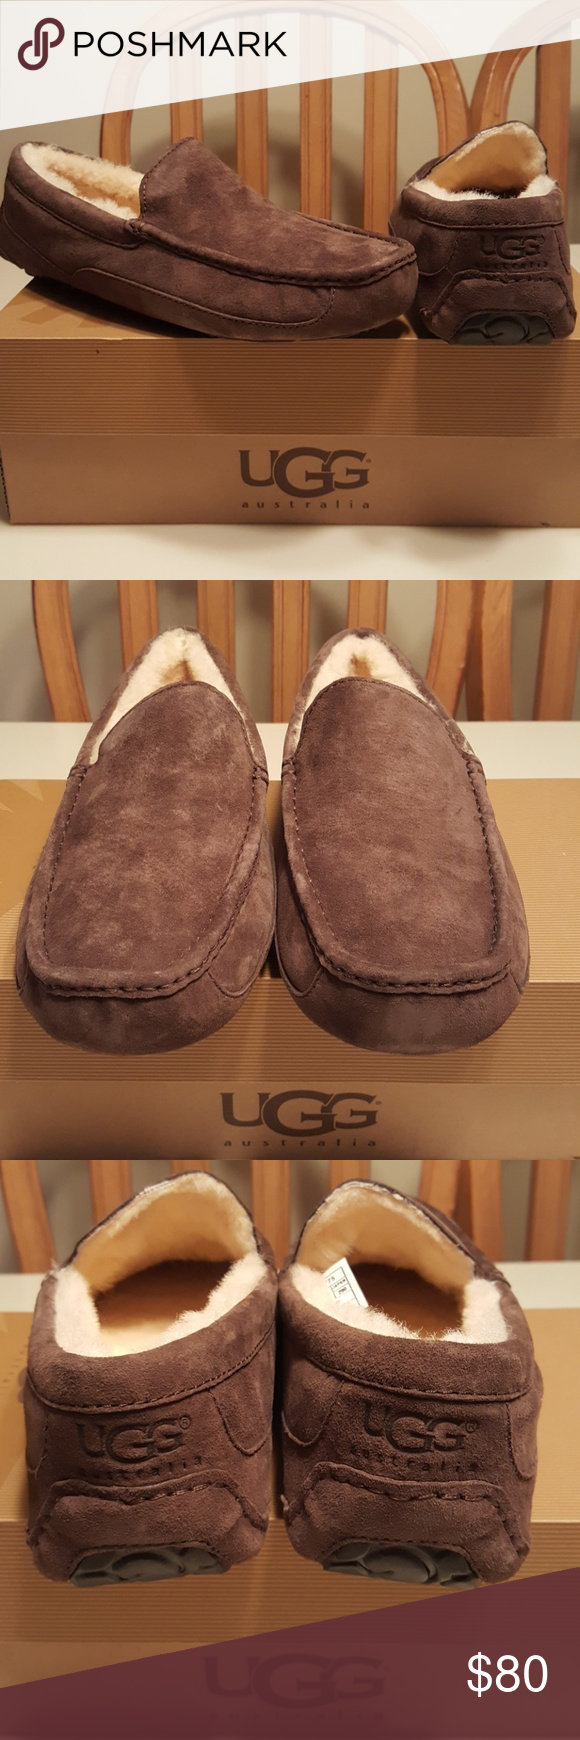 2d576dae0a6 Ugg Ascot MENS Slippers Ugg Ascot MENS slippers - New with tags ...